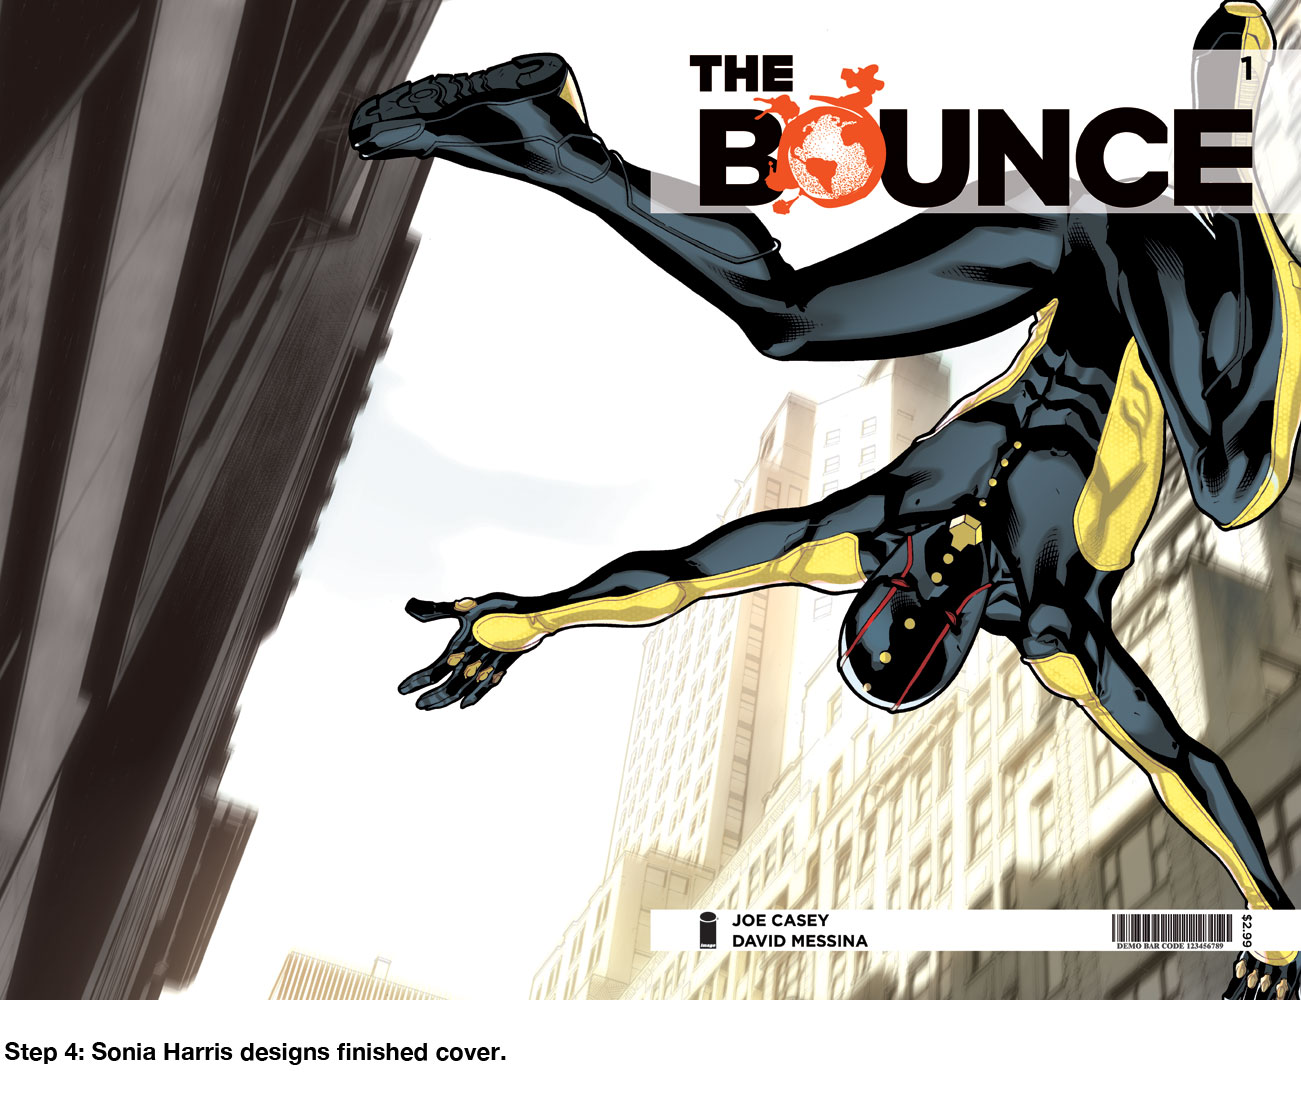 bounce_covers_process01c.jpg